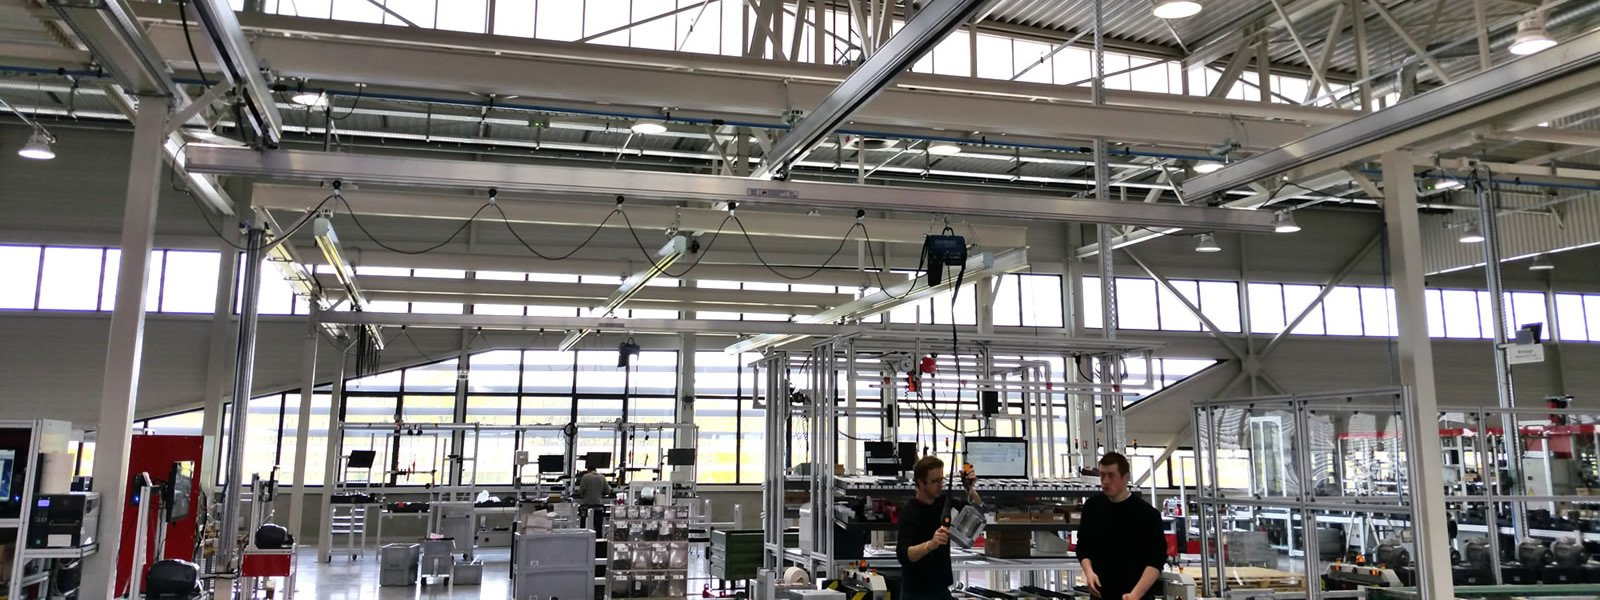 Aluminum Light crane ATS Group, Appalette Tourtellier Systèmes, ATS Conveyors India, HERO Fördertechnik, installed at Endress & Hauser in France